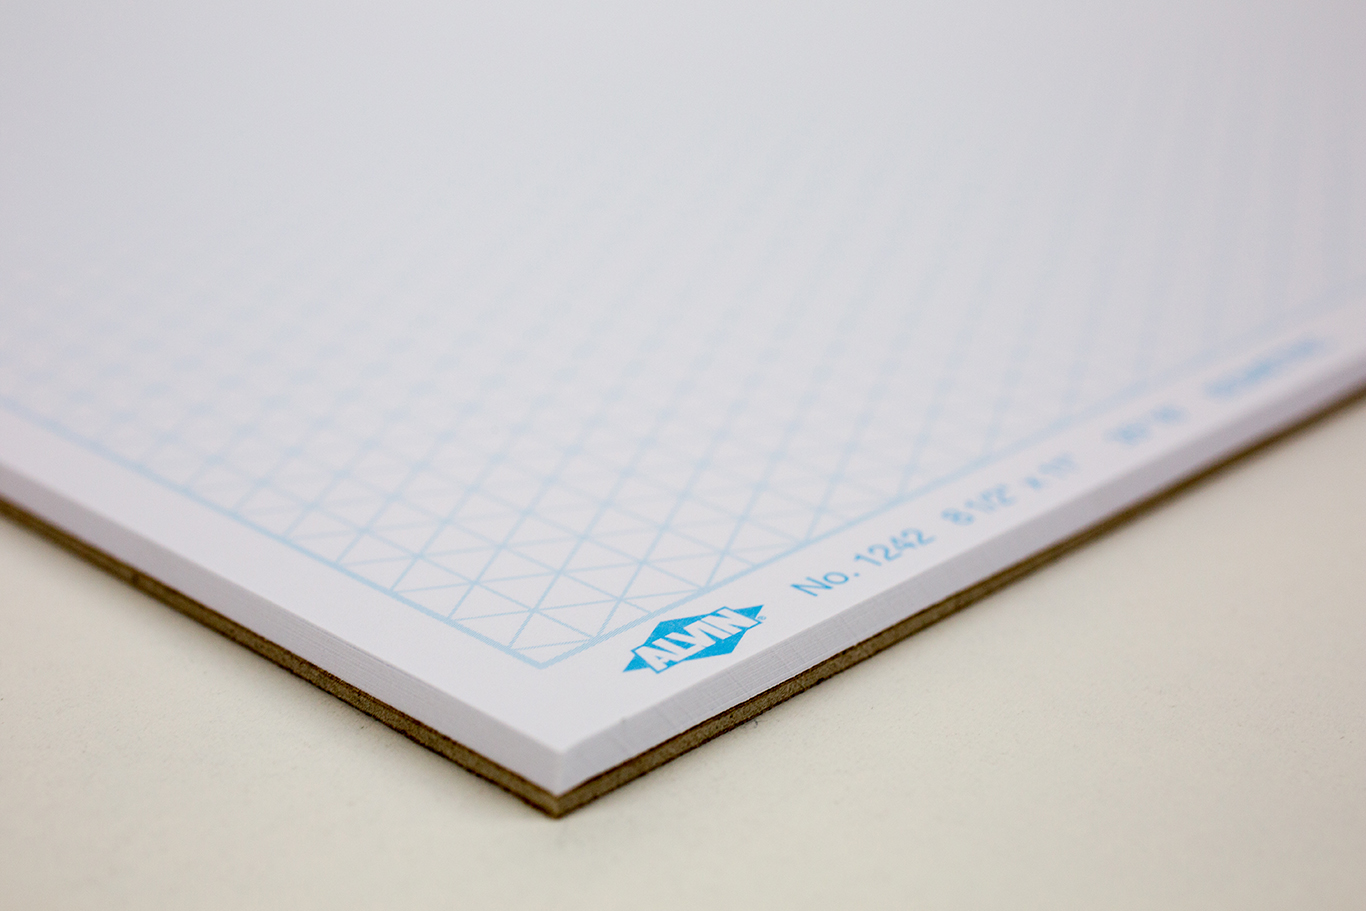 "Alvin® Isometric 30-Sheet Paper Pad 8.5"" x 11"" Item No. 1242-1"